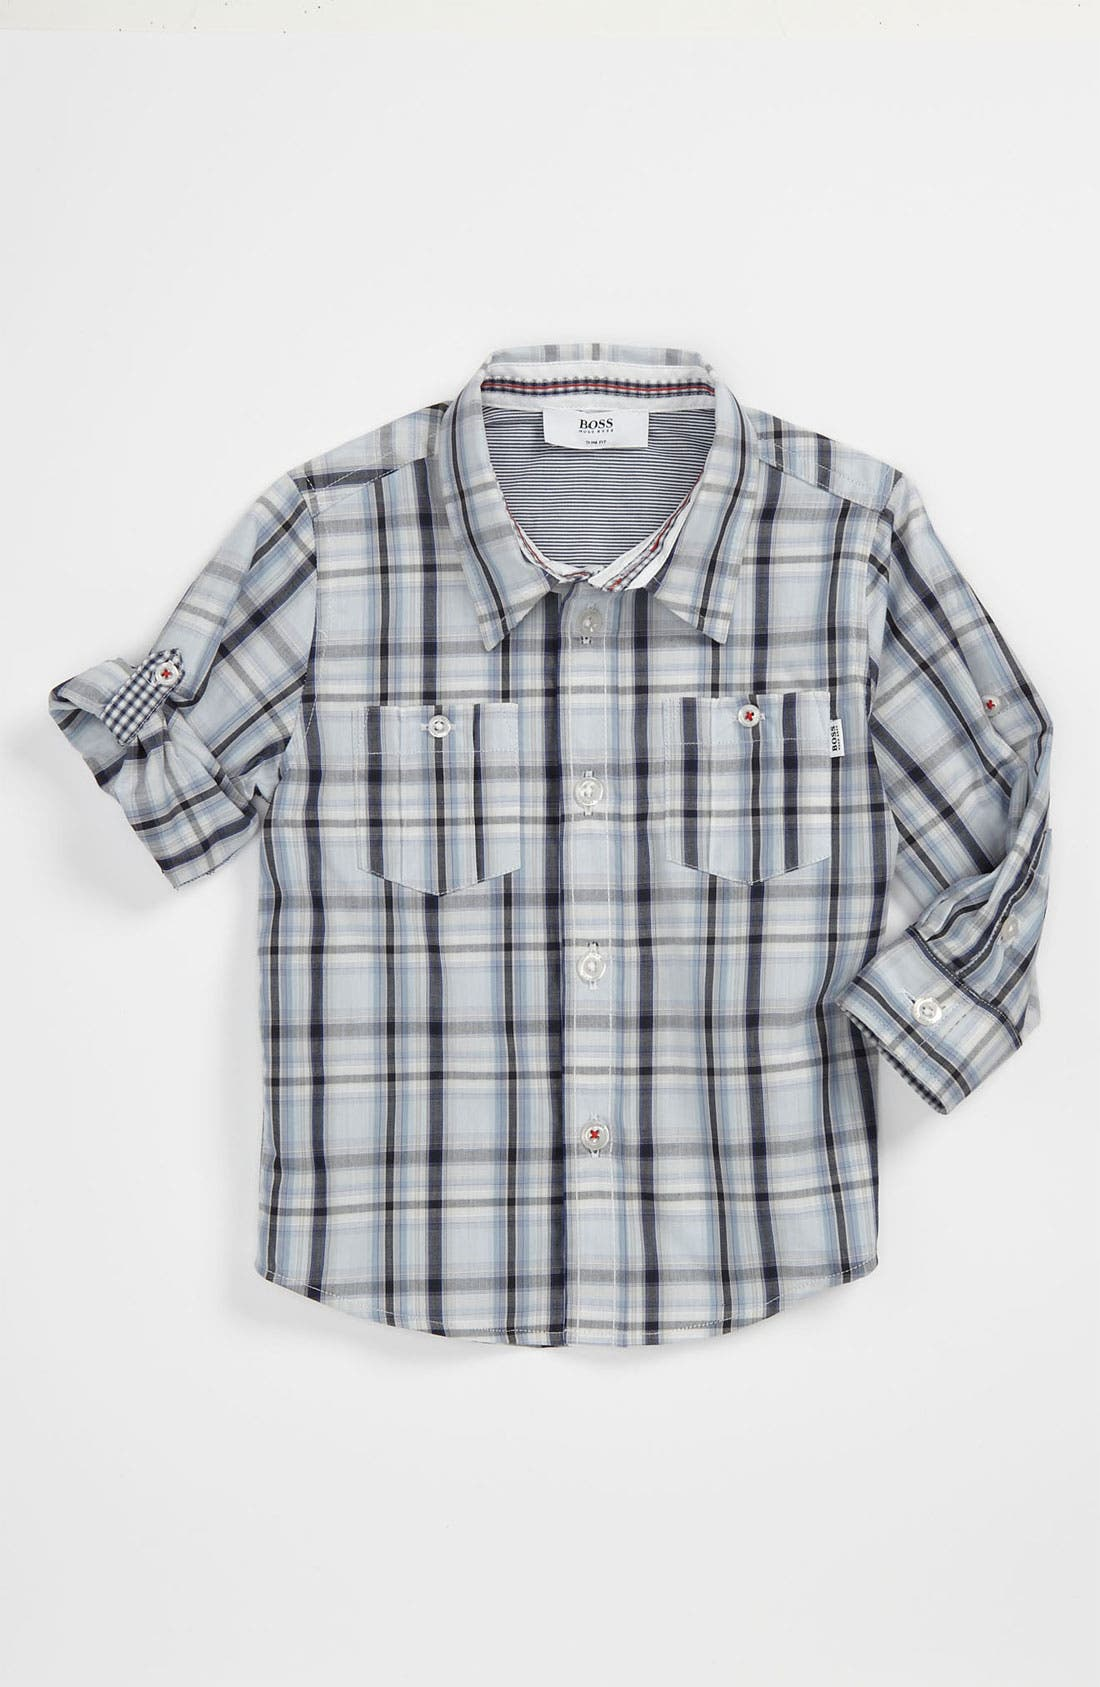 Alternate Image 1 Selected - BOSS Kidswear Poplin Shirt (Baby)